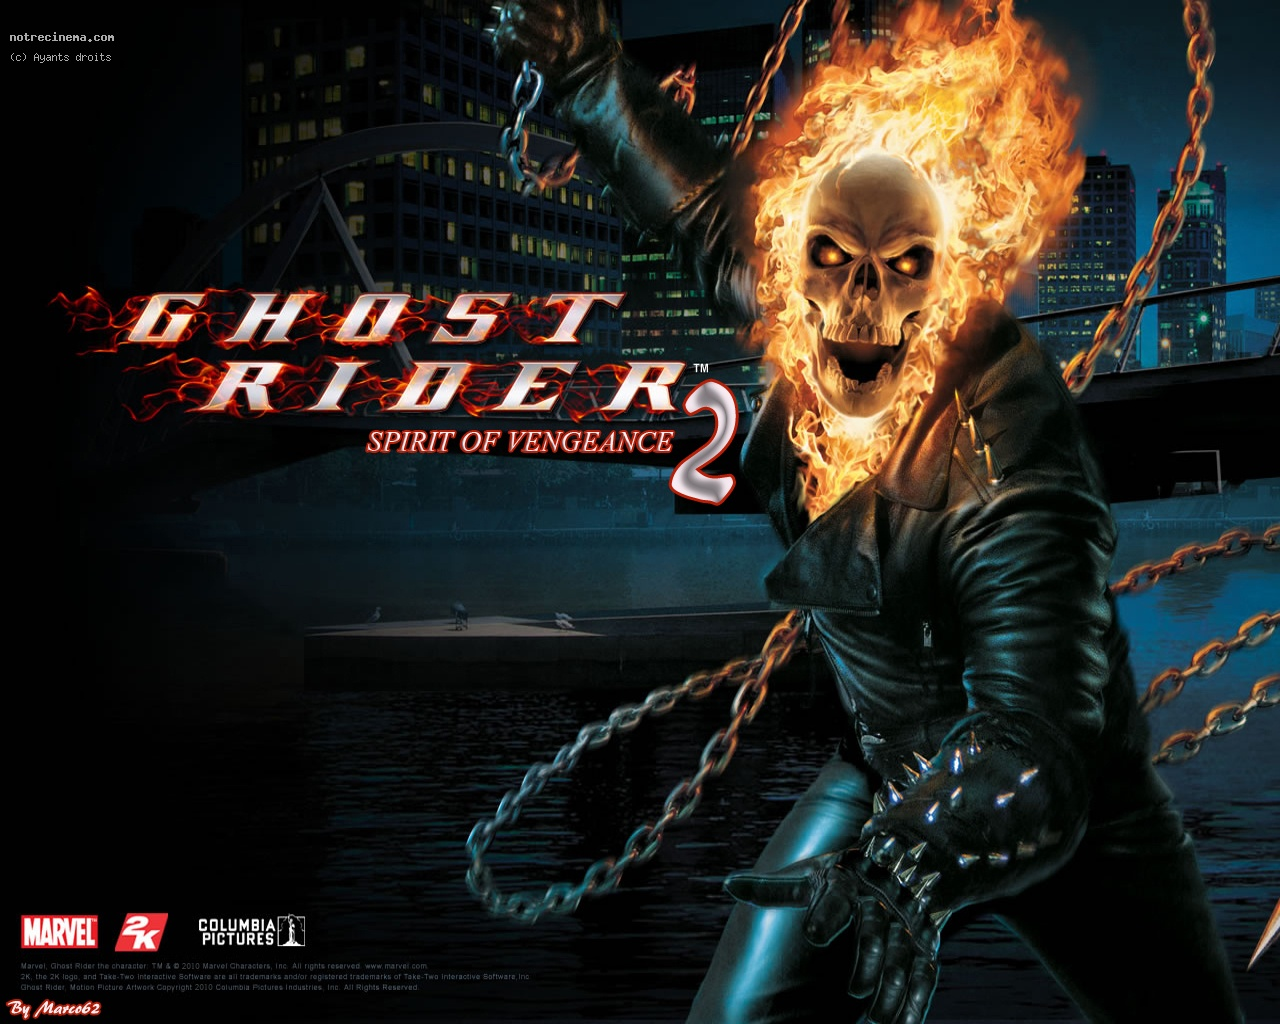 jk 39 s wing ghost rider 2 movie review. Black Bedroom Furniture Sets. Home Design Ideas